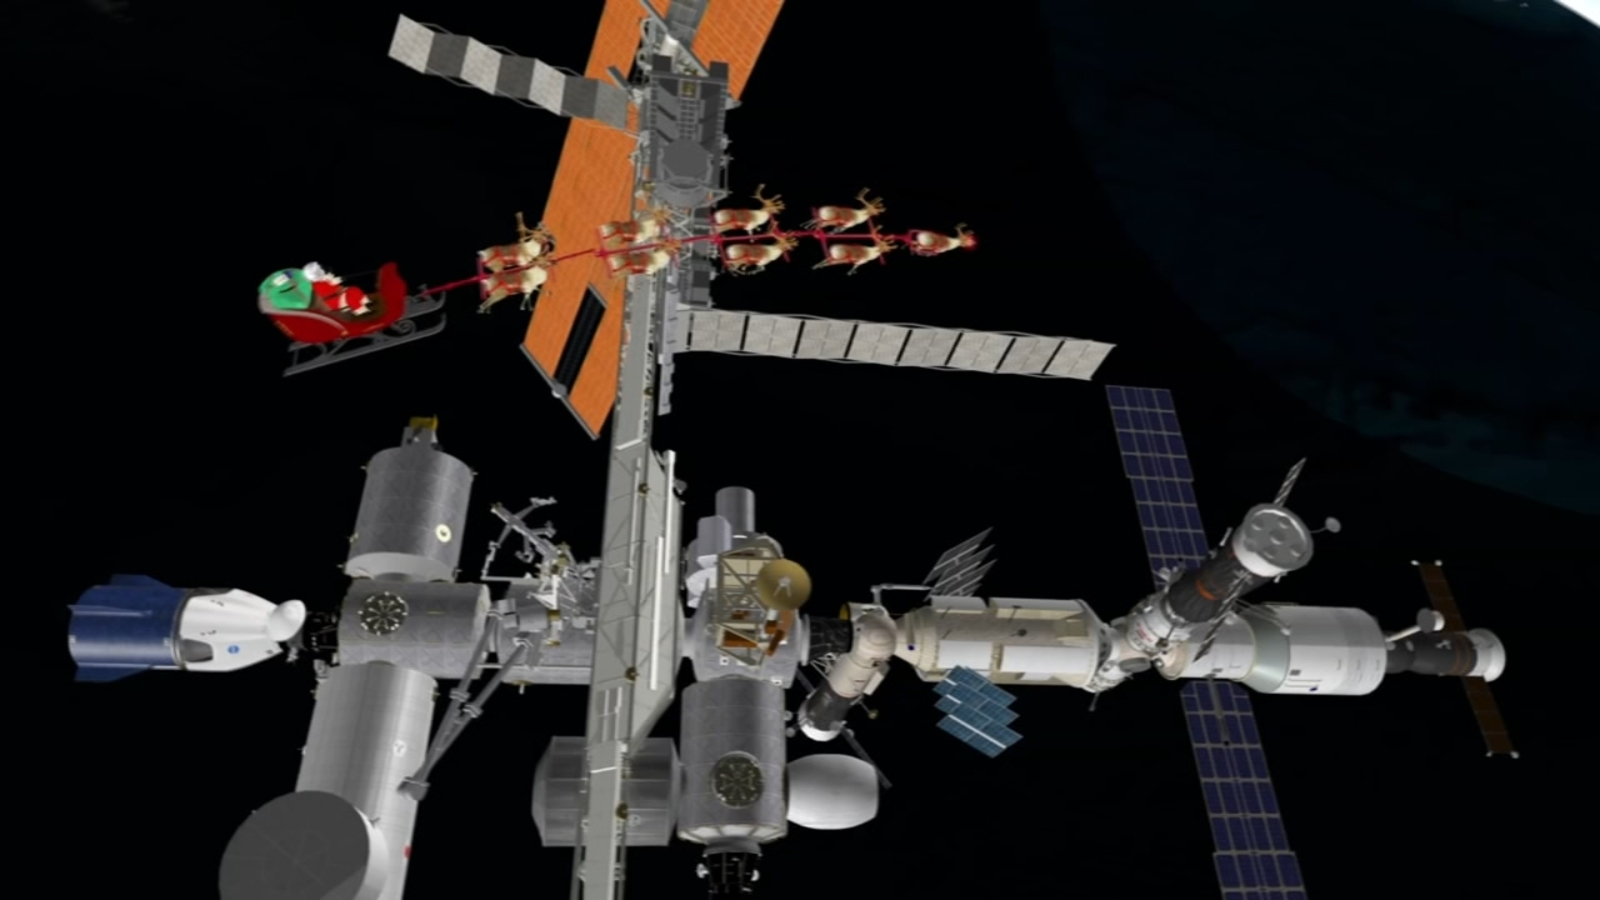 Santa Claus visits astronauts at International Space Station during trip around the world